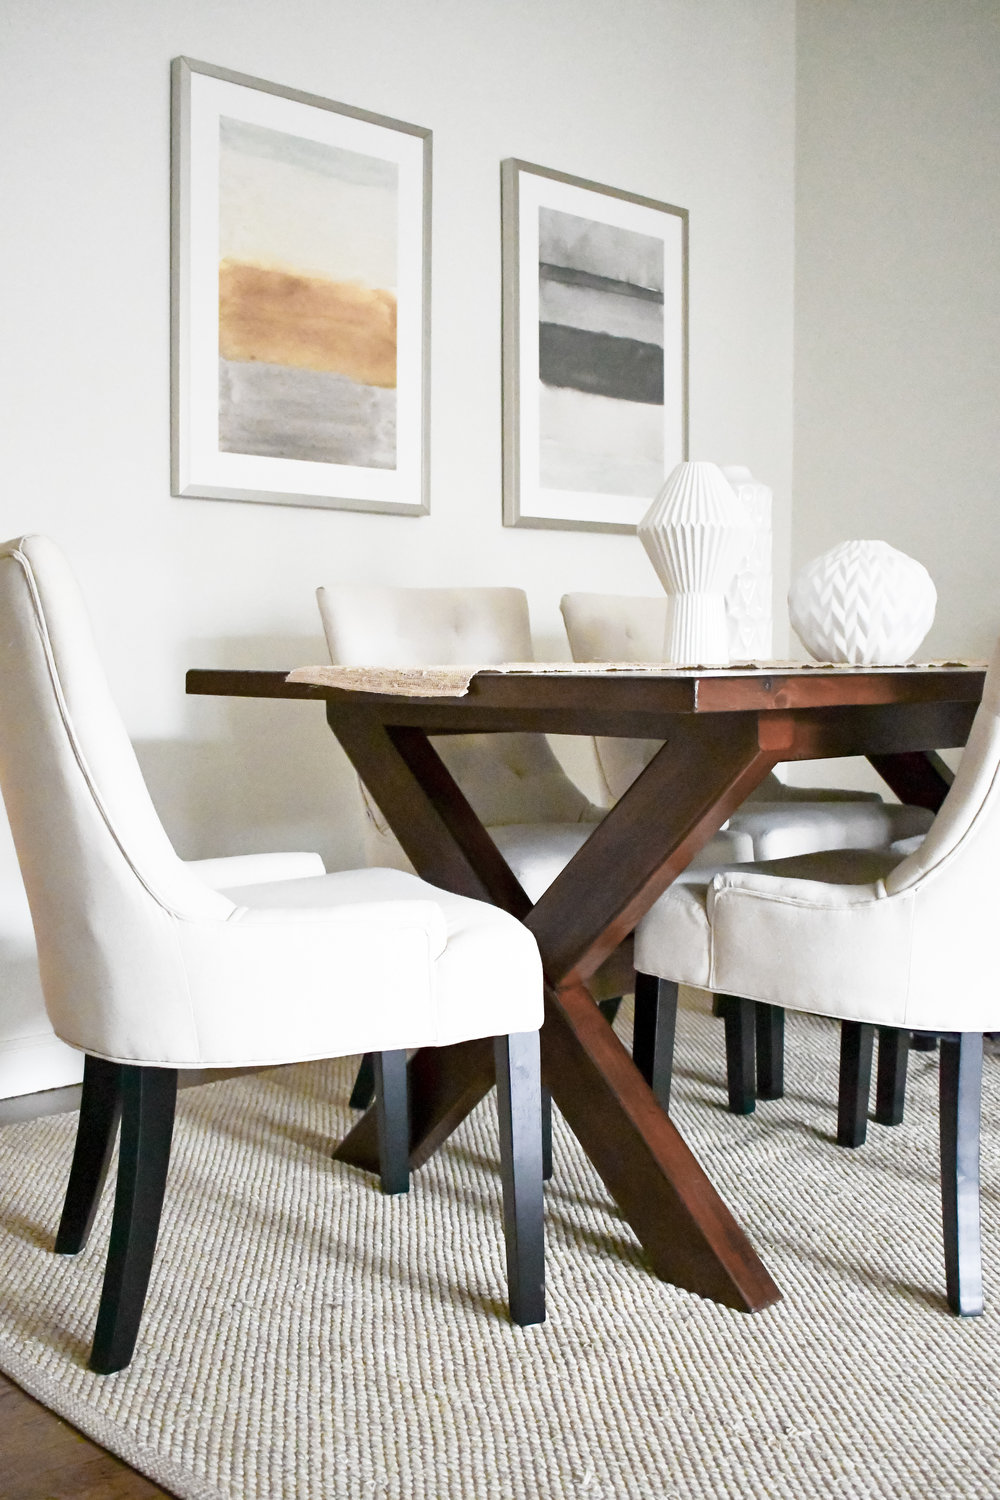 Angela Grace Design // Pierce Living and Dining Room // San Francisco and SF Bay Area Interior Designer, Decorator